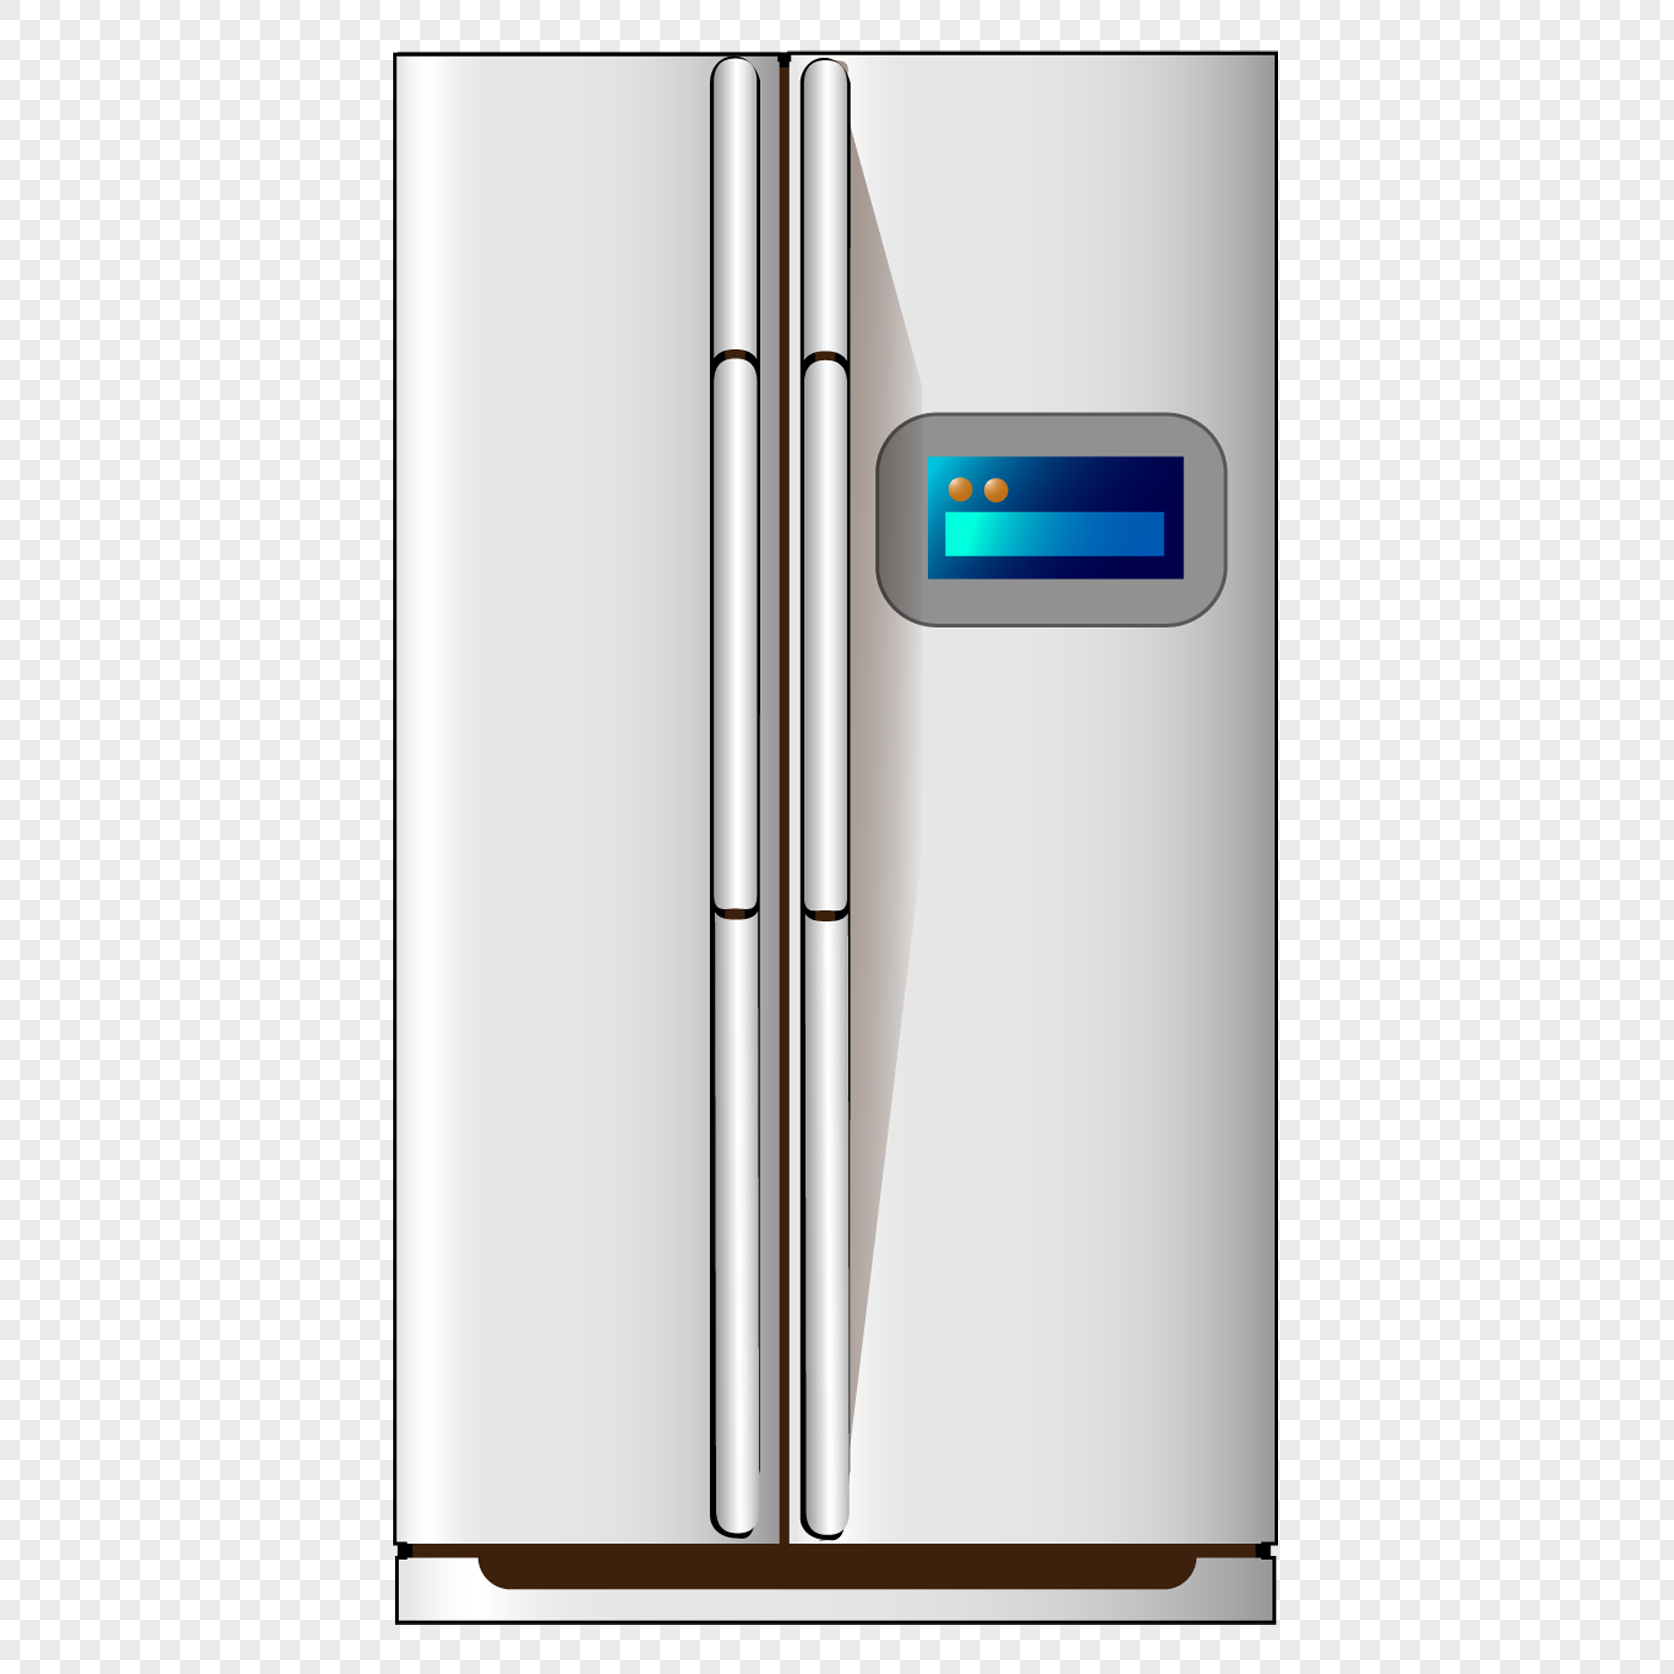 Intelligent Refrigerator For Household Appliances Png Image Picture